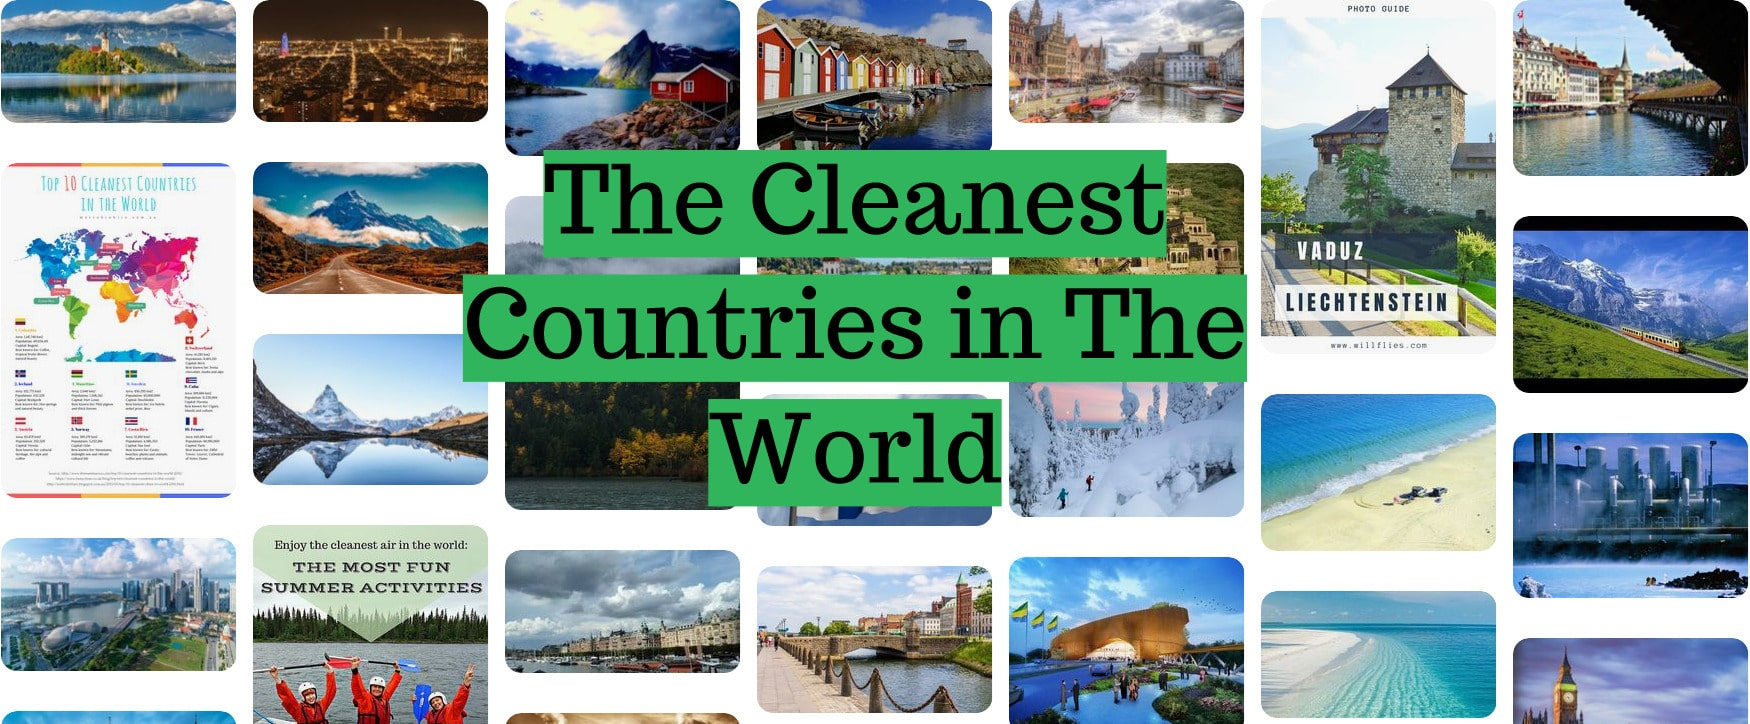 The Cleanest Countries in The World